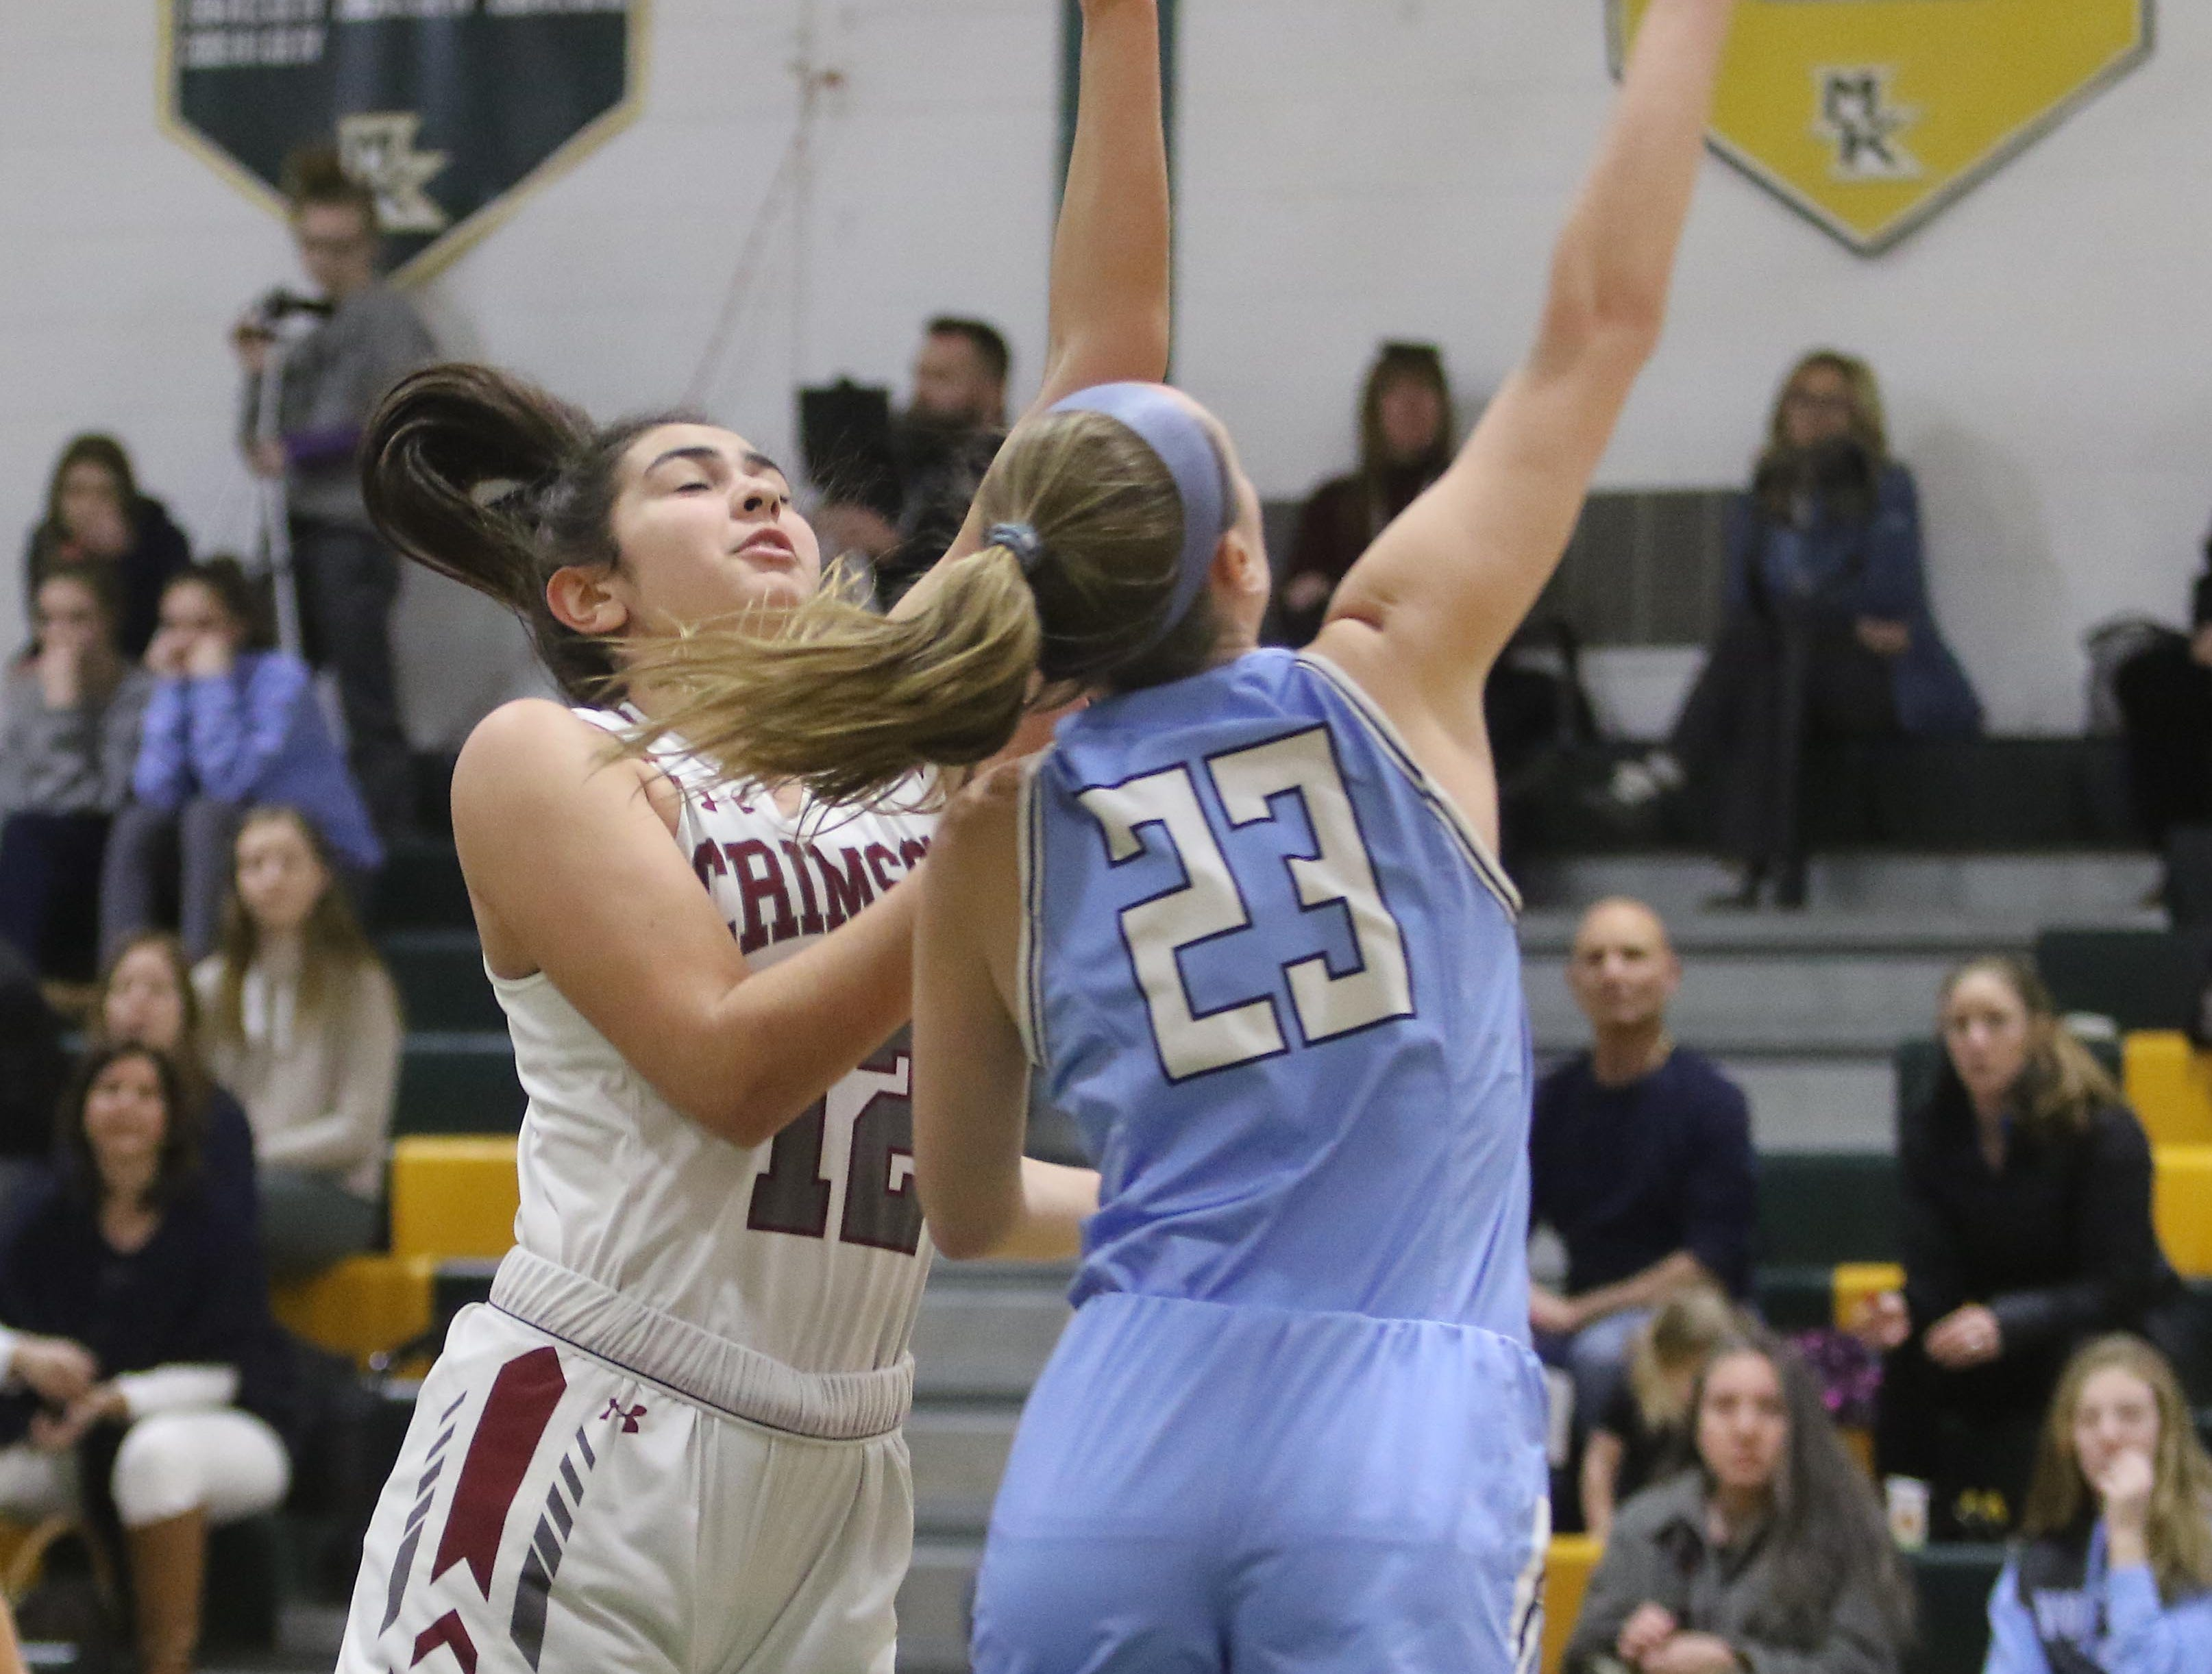 Faith Pappas of West Morris knocks the ball away from Addison Ibrahim of Morristown-Beard in the first half.